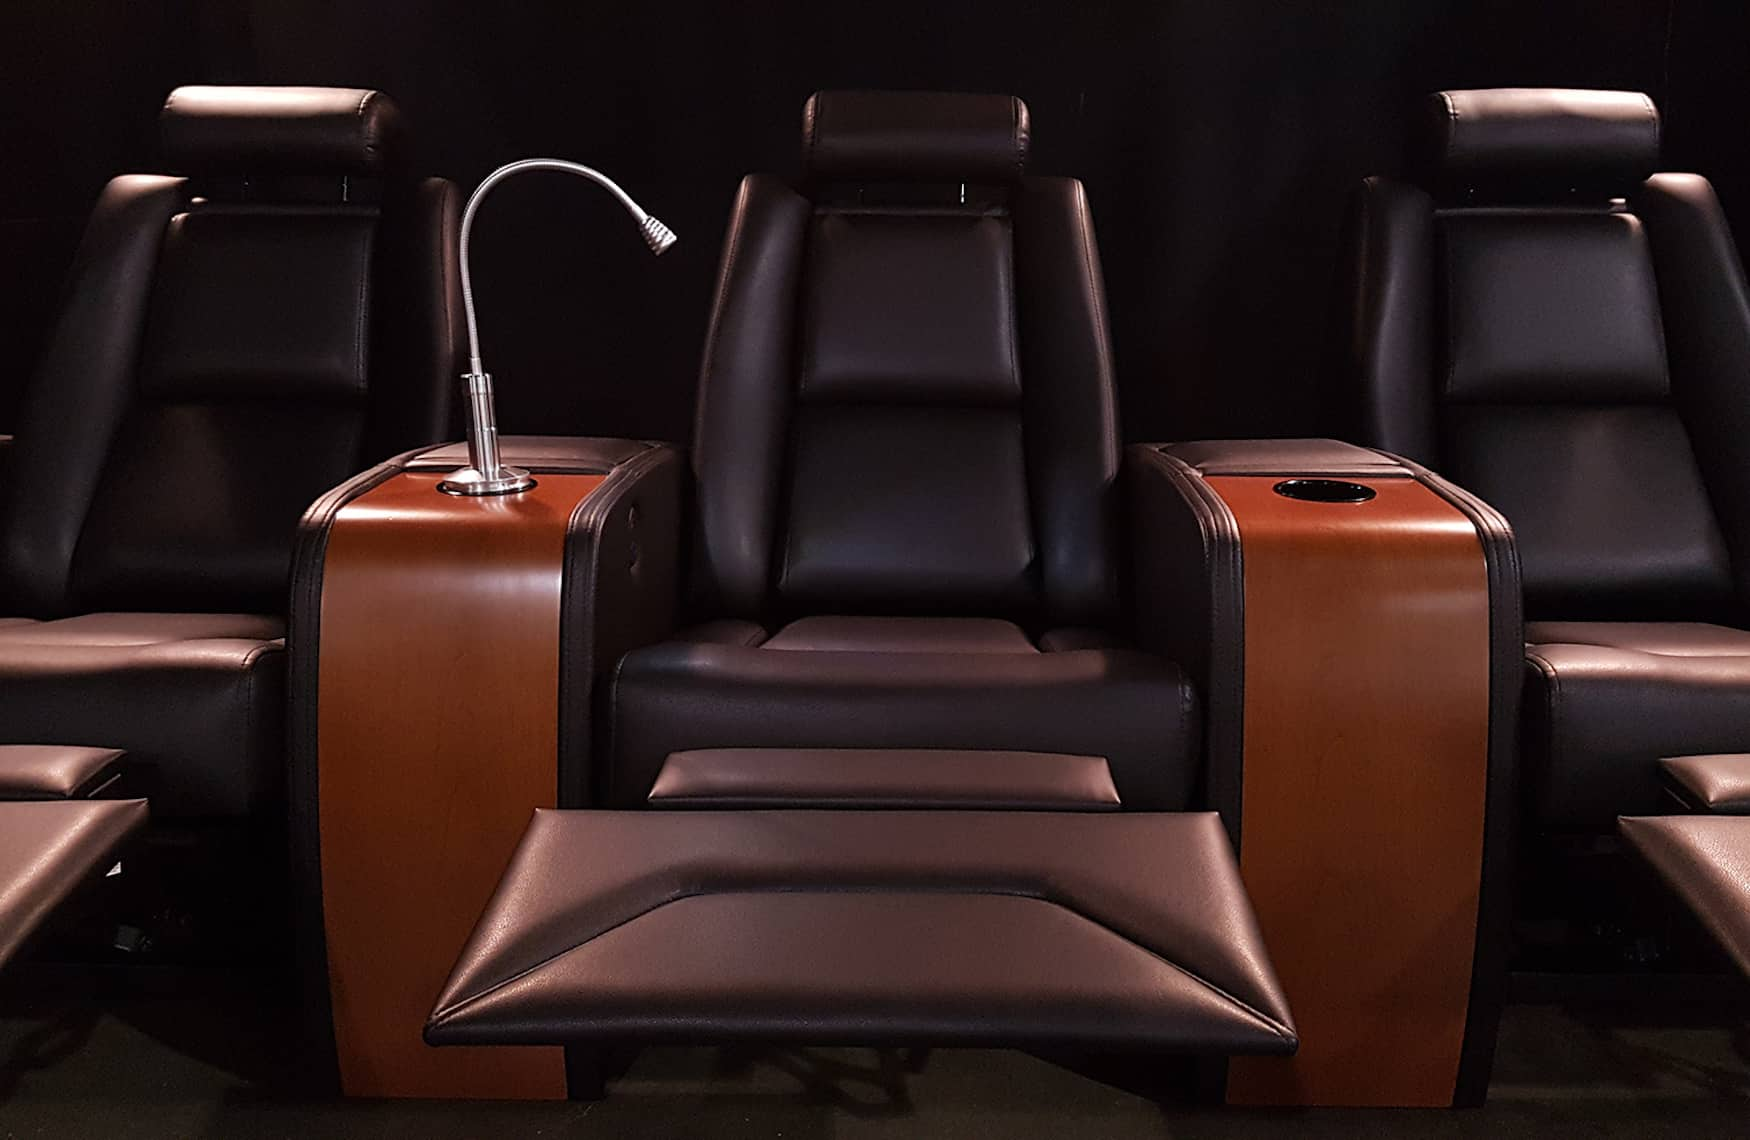 Black leather theatre recliner with light